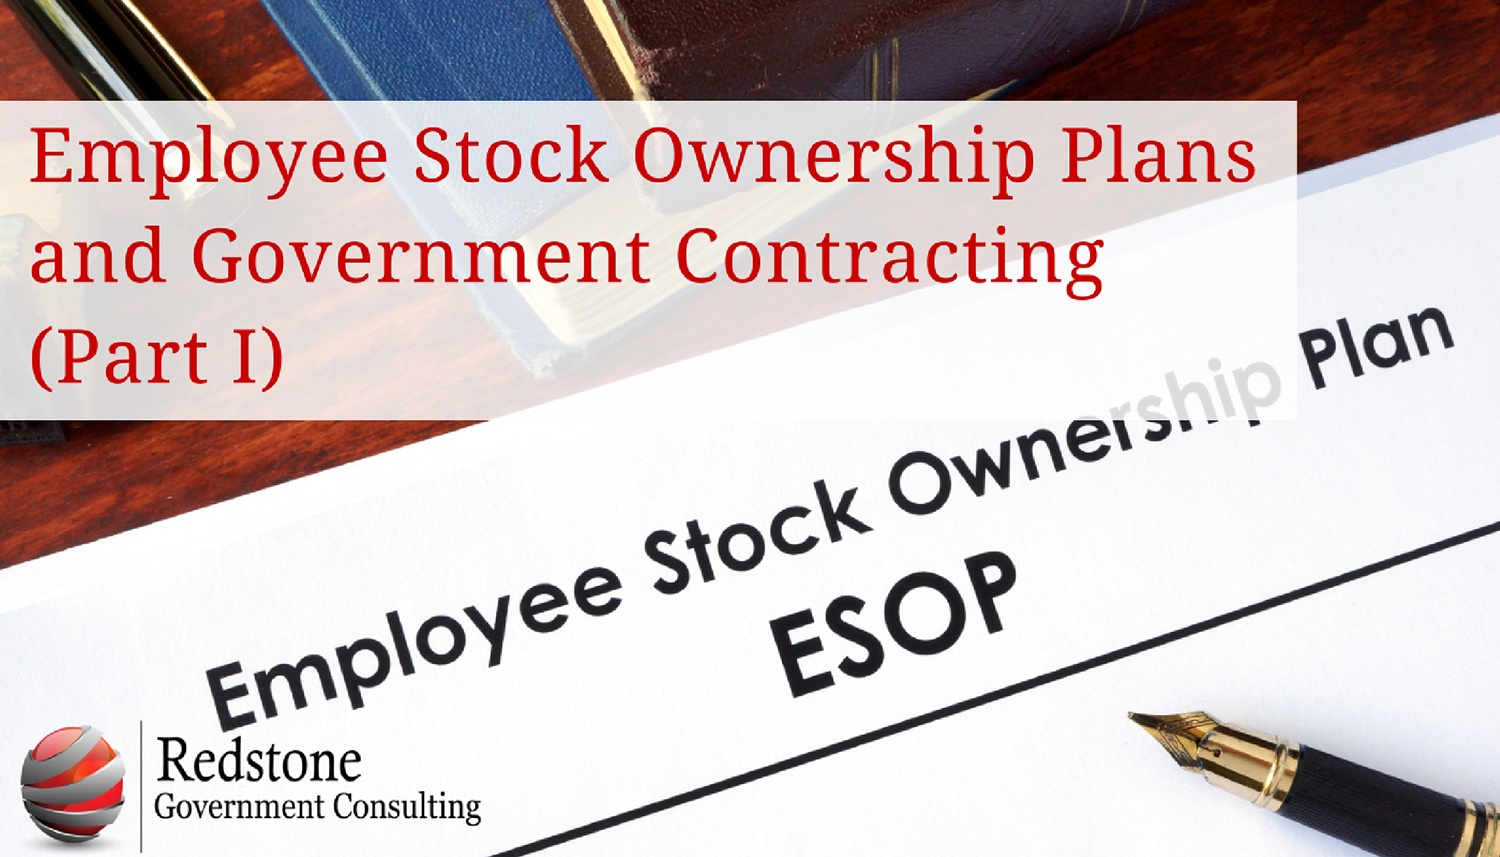 Employee Stock Ownership Plans (ESOP) and Government Contracting (Part I) - Redstone gci